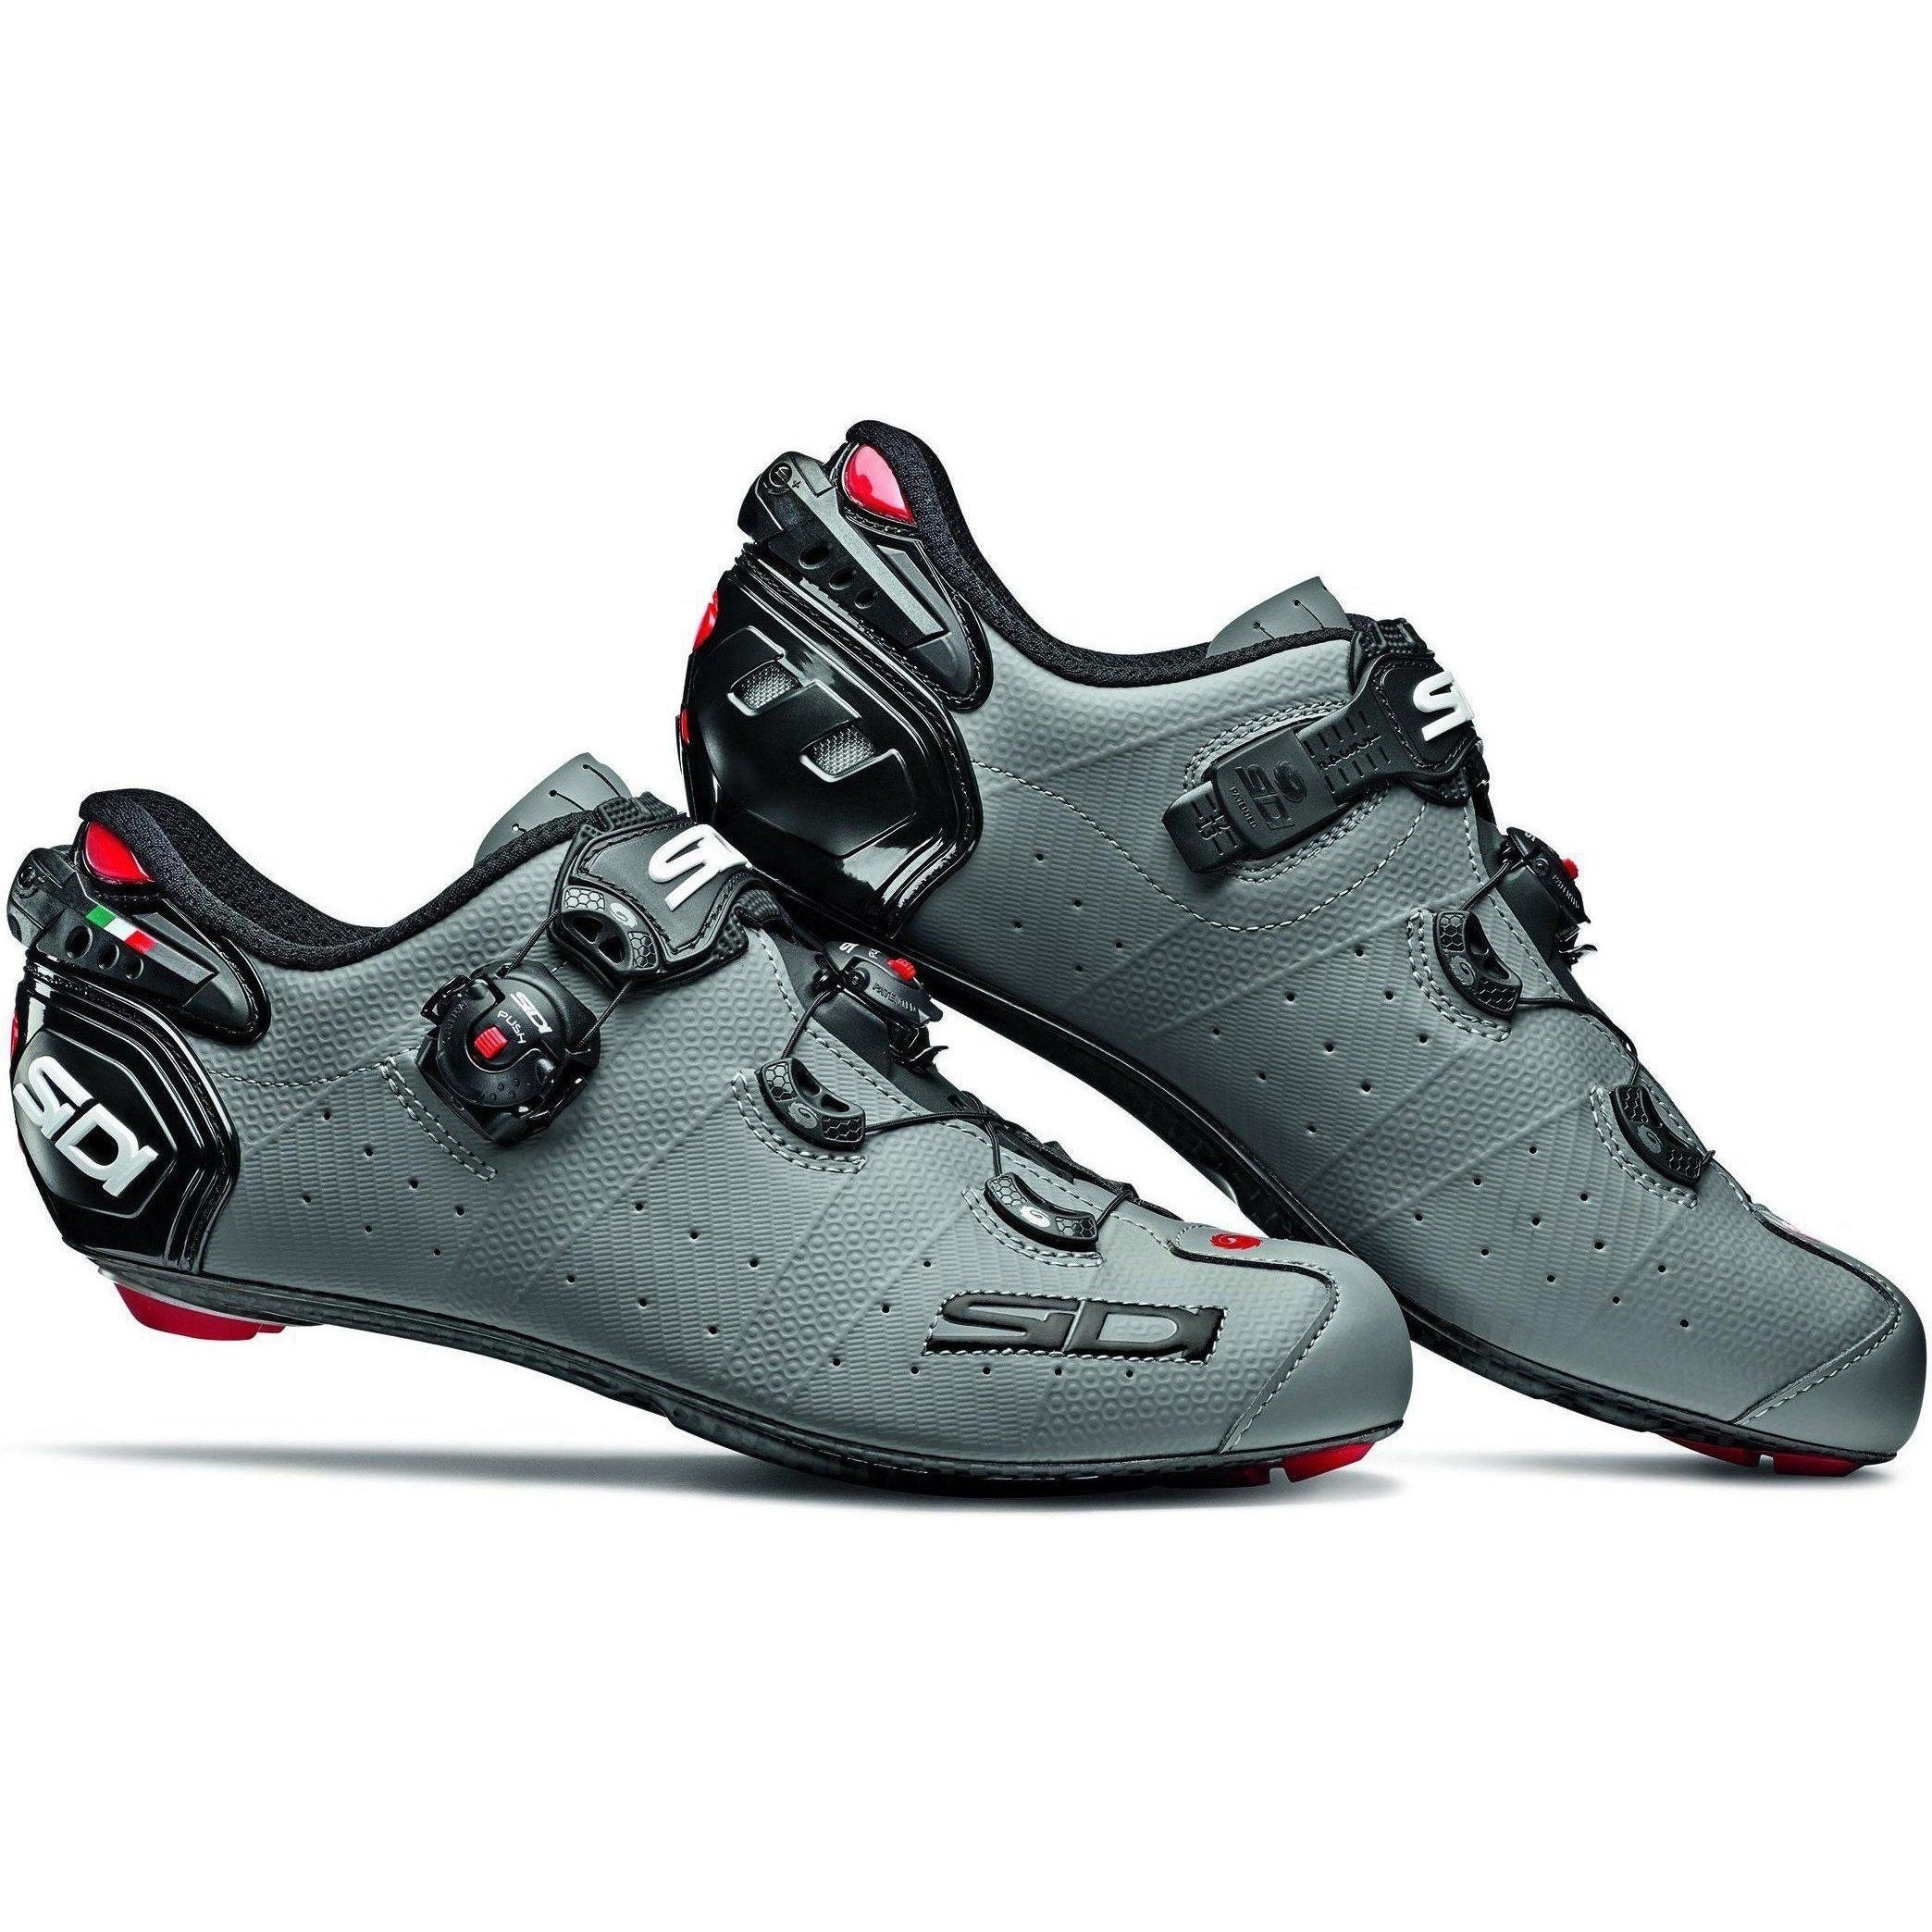 Sidi Wire 2 Carbon Road Shoe - Matt